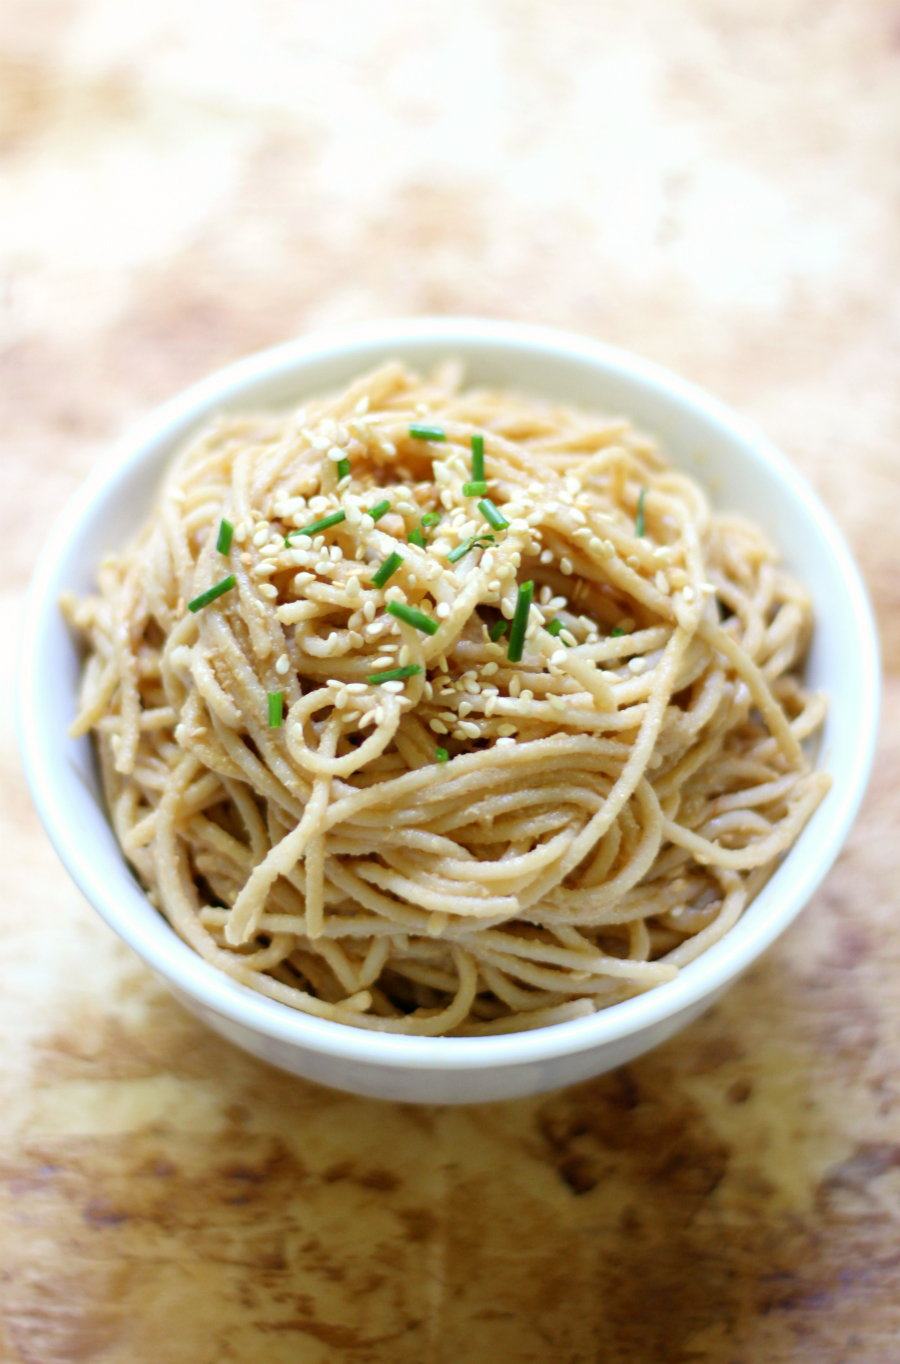 Cold Sesame Peanut Noodles (Gluten-Free, Vegan) | Strength and Sunshine @RebeccaGF666 A favorite Chinese take-out dish made right at home! A gluten-free, vegan, and soy-free recipe for Cold Sesame Peanut Noodles! Quick, easy, and mighty tasty, these noodles will be gone in a flash!